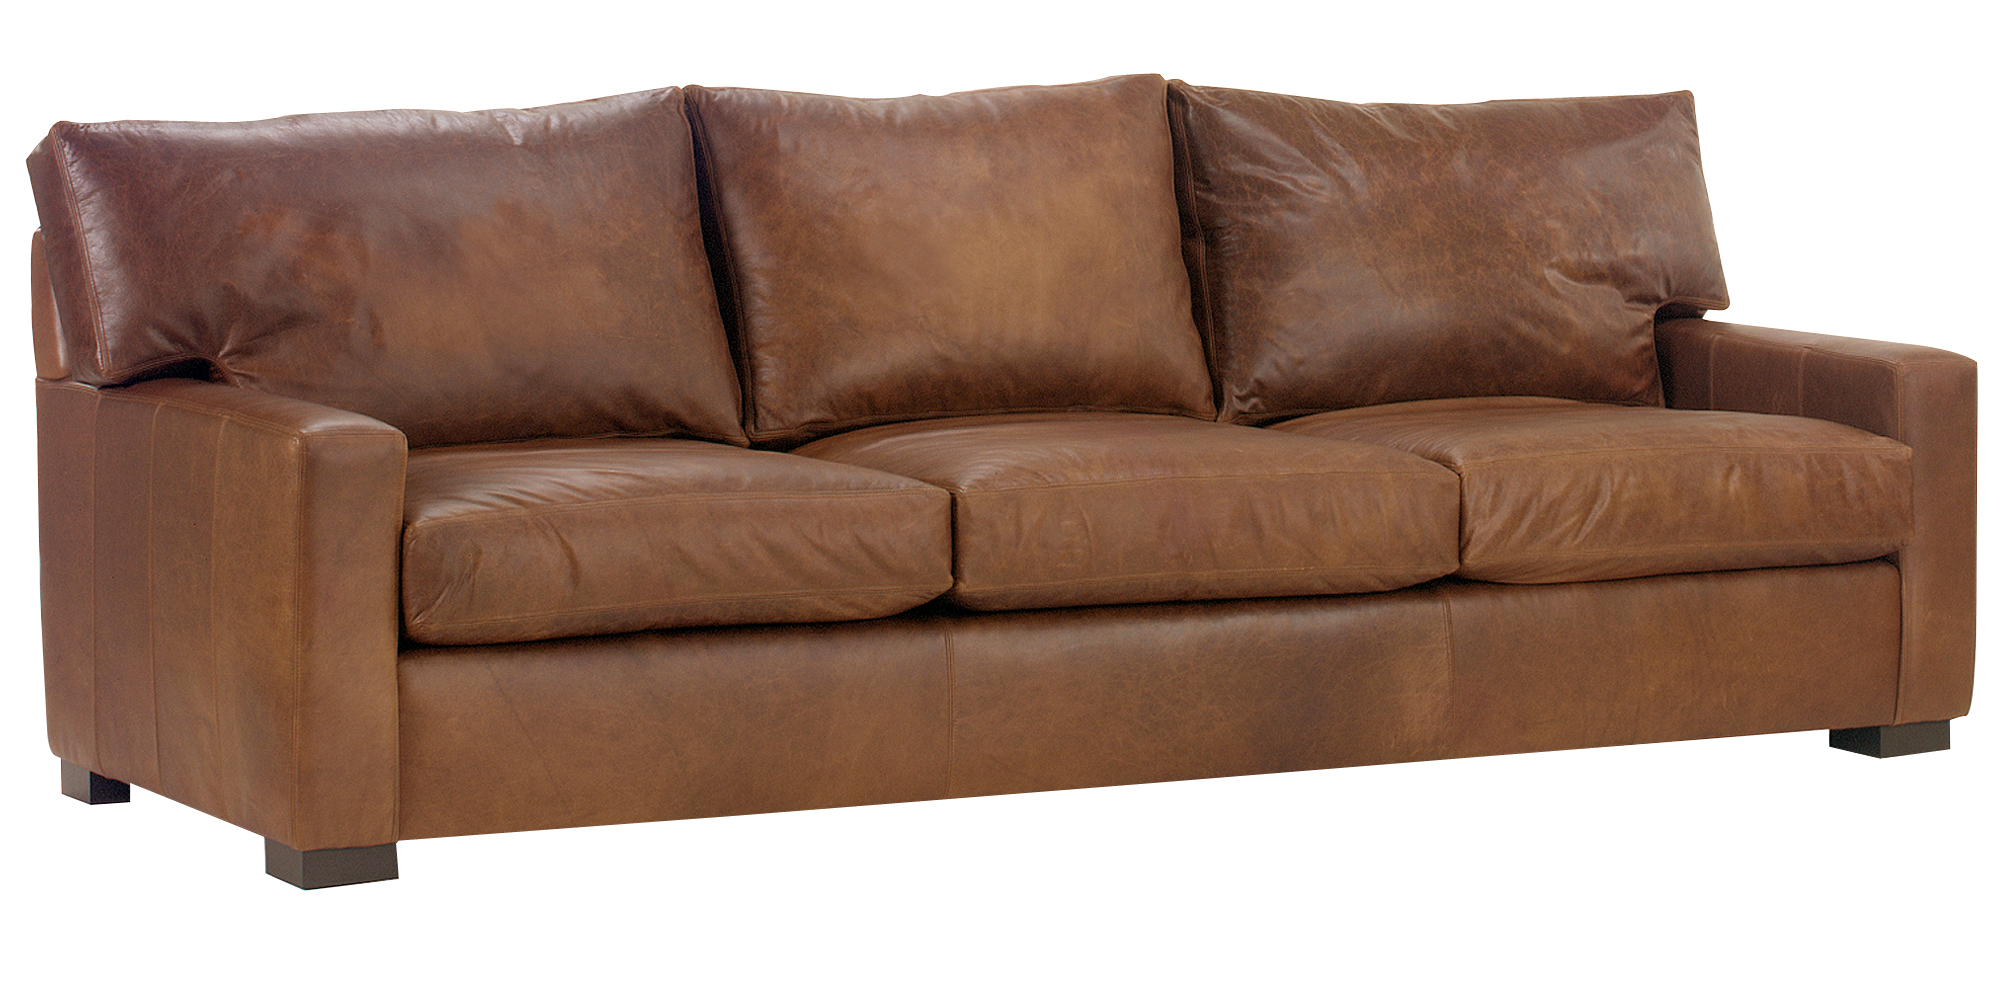 oversized leather sofa nc paula deen craftmaster reviews contemporary furniture with track arms